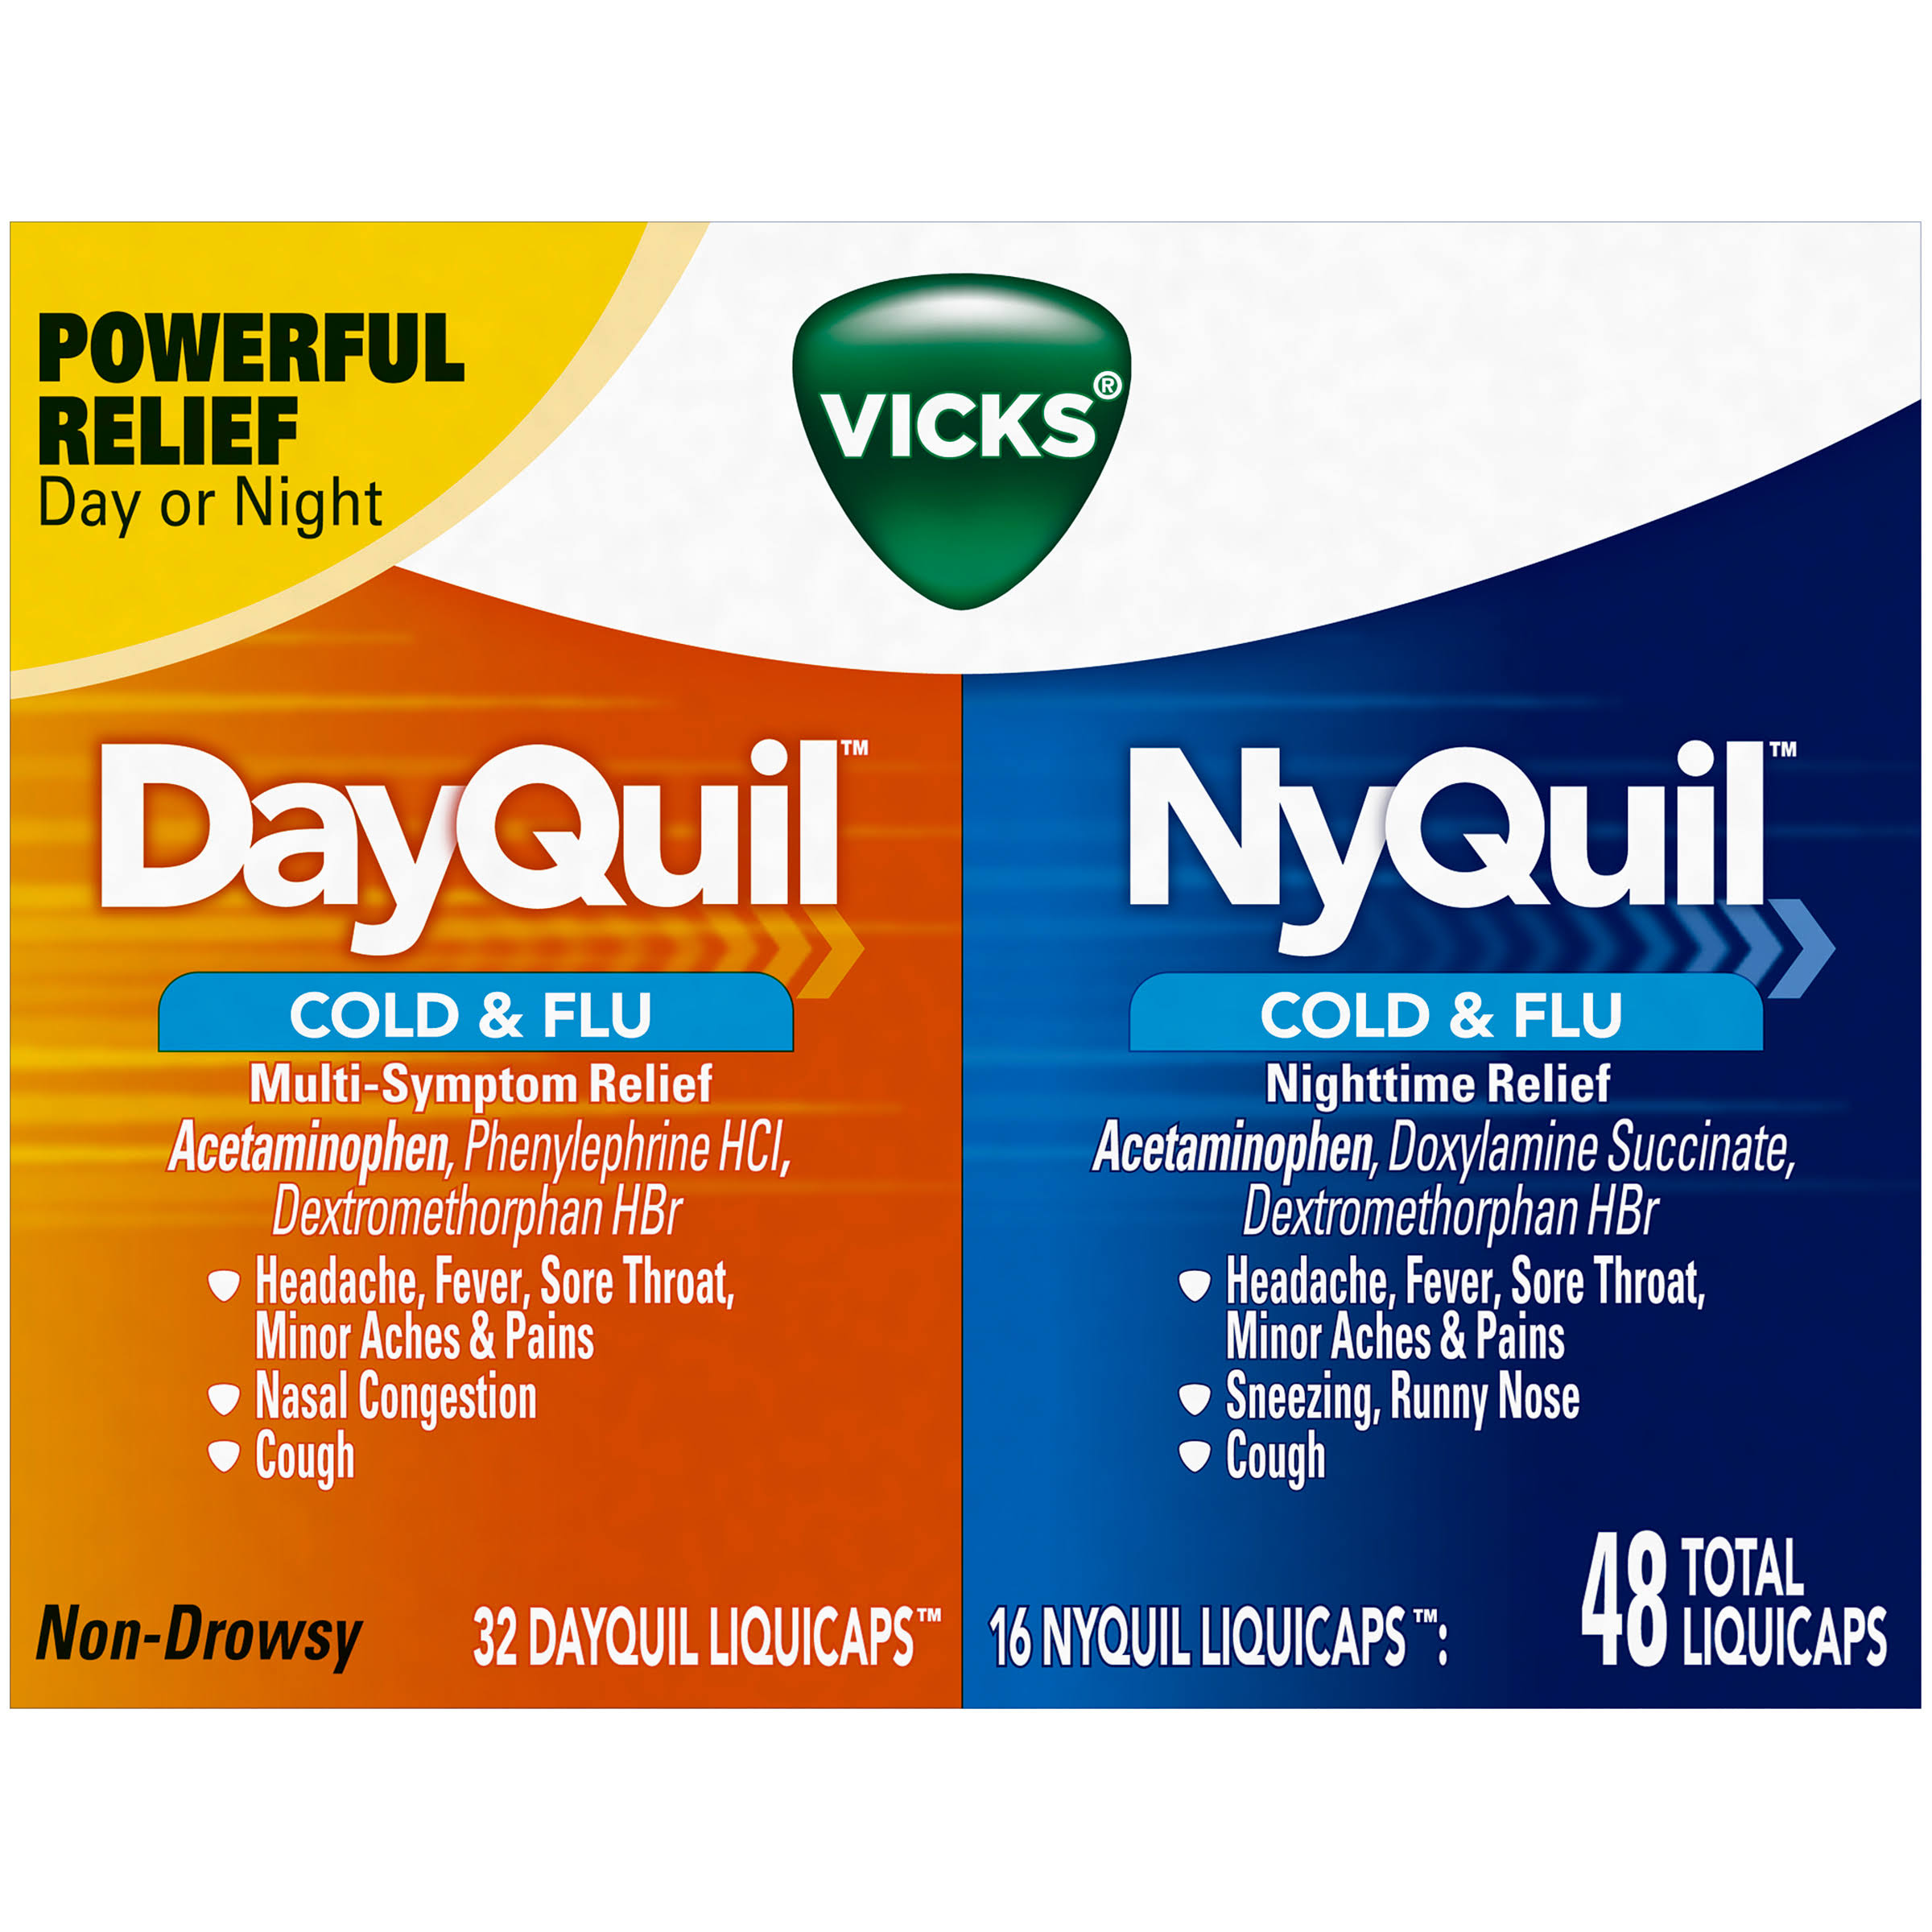 Vicks Dayquil and Nyquil Cold and Flu Relief Liqui Capsules - 48ct